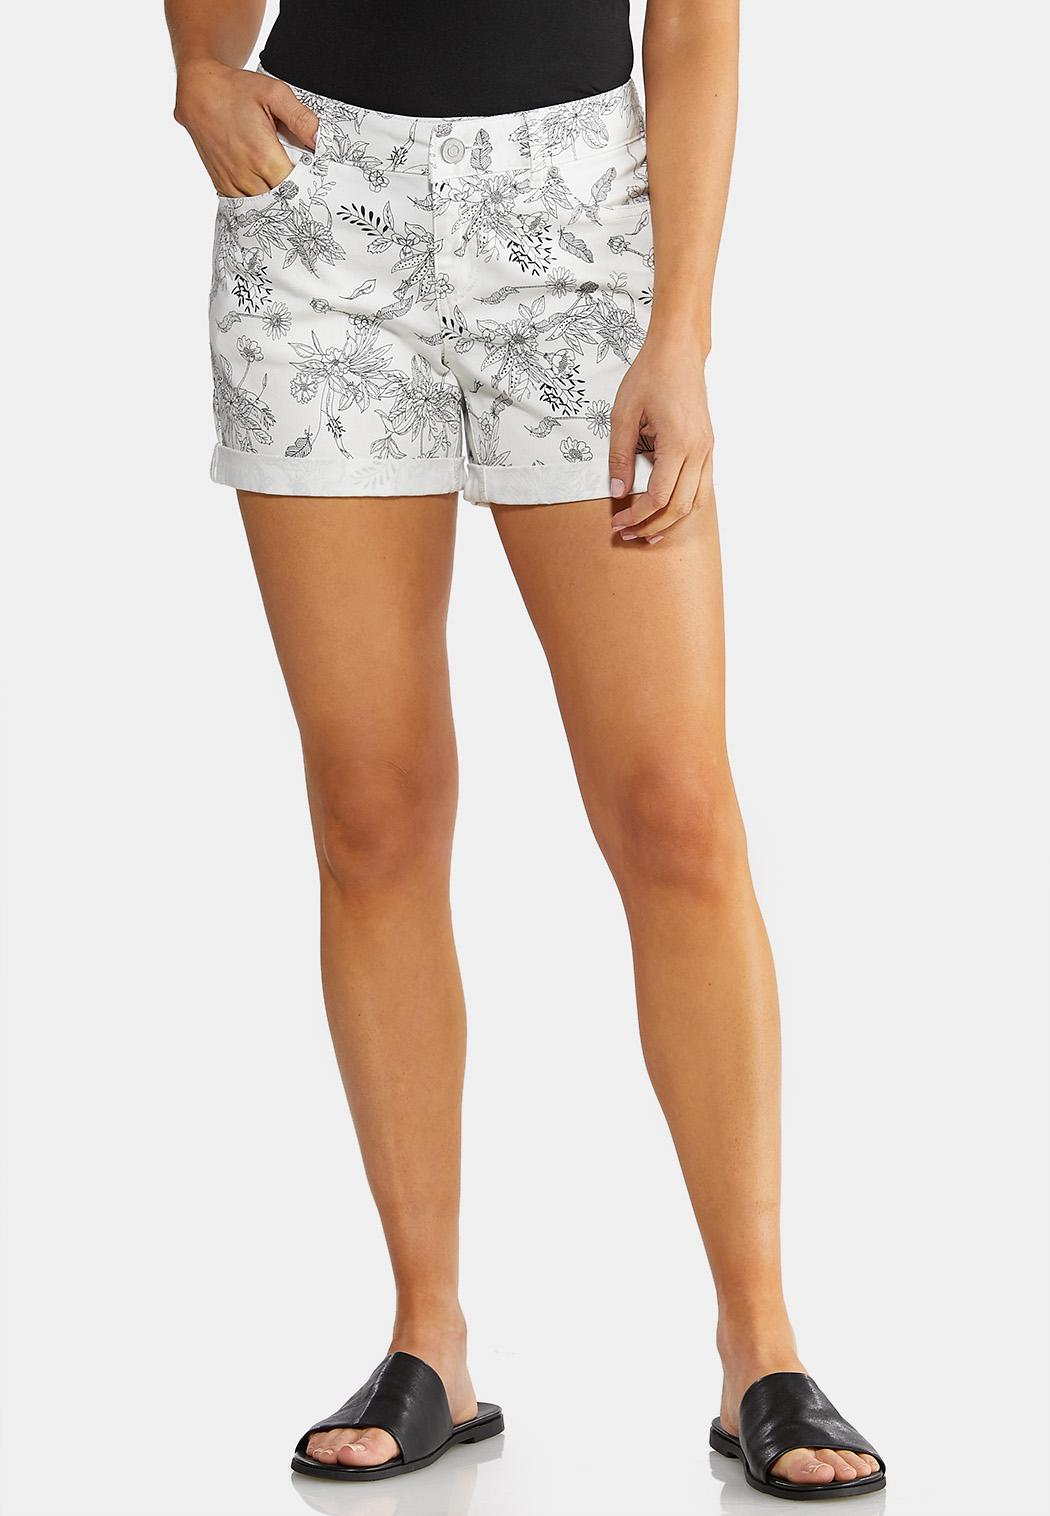 0fad2870b40f Sketchy Floral Shorts alternate view · Sketchy Floral Shorts